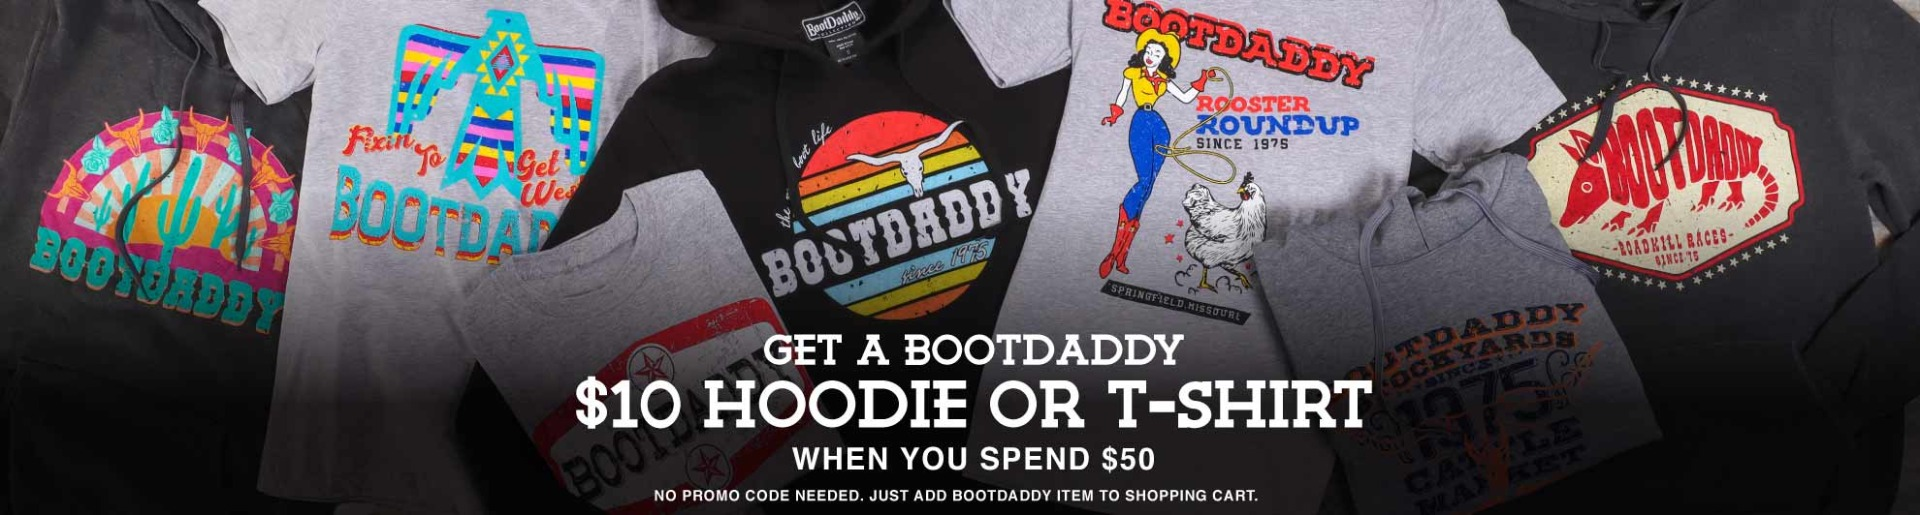 bootdaddy hoodie or tshirt for $10 when you spend $50